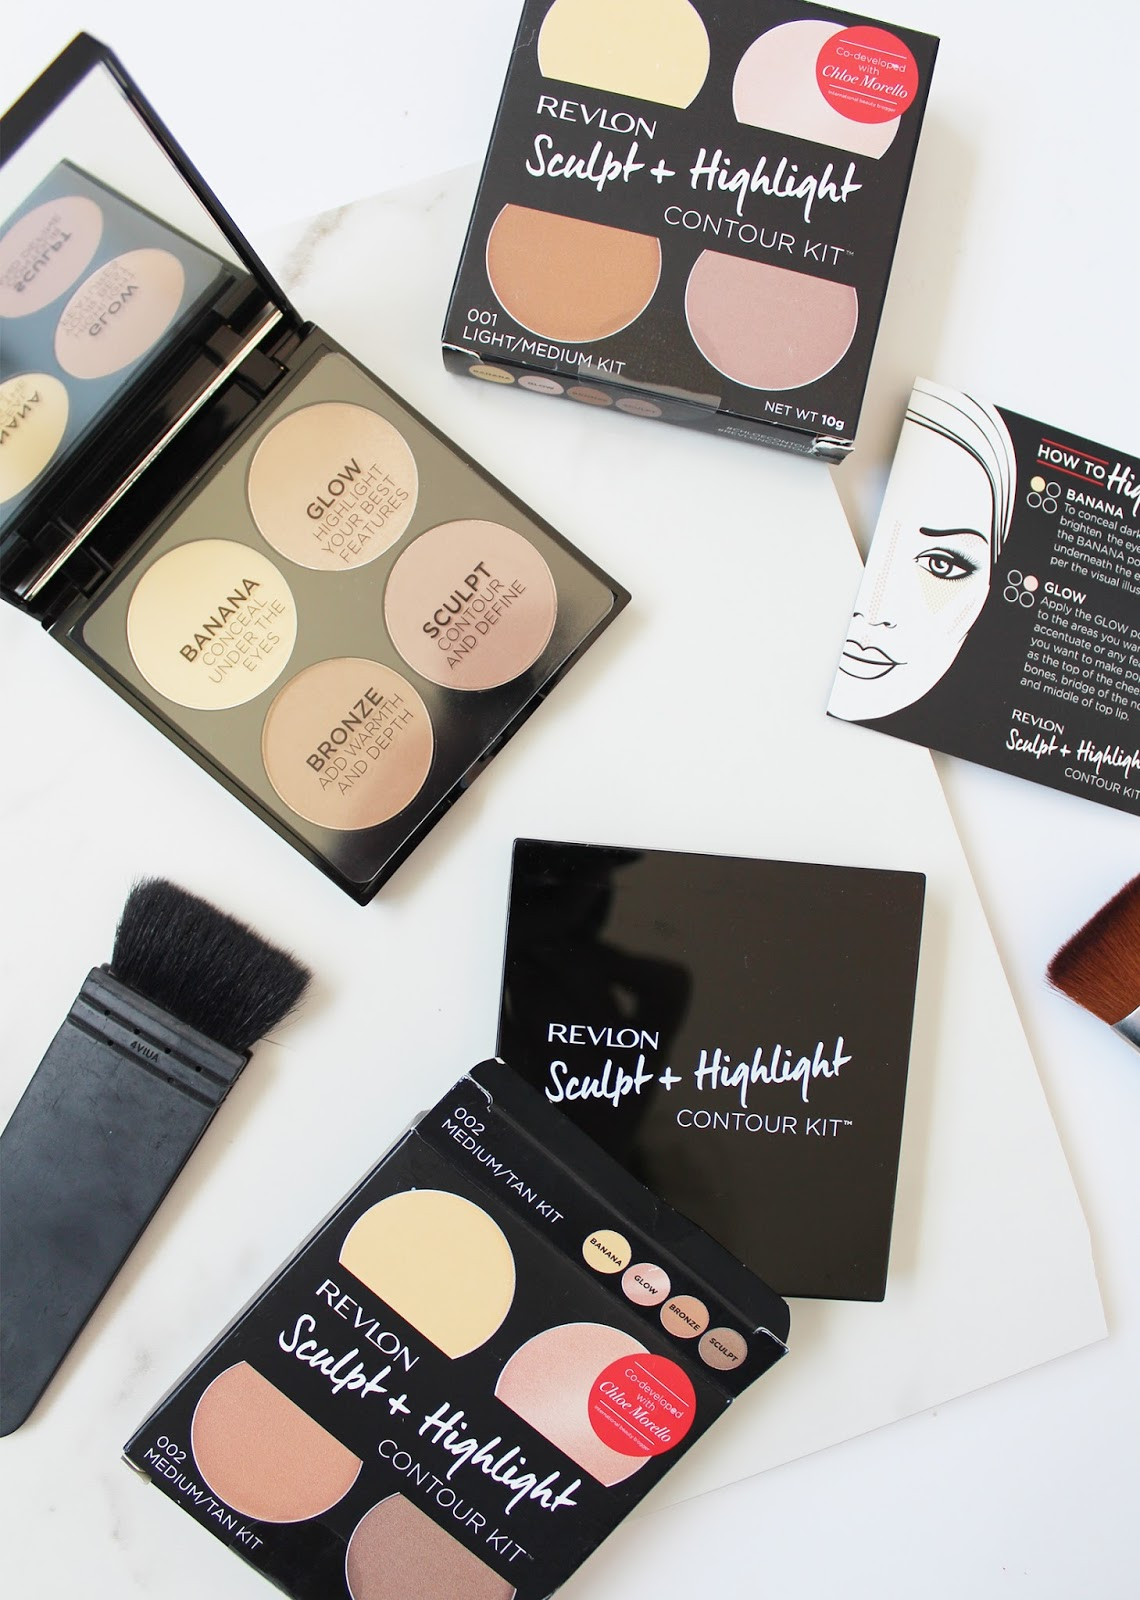 REVLON X CHLOE MORELLO | Sculpt + Highlight Kit - Review + Swatches - CassandraMyee